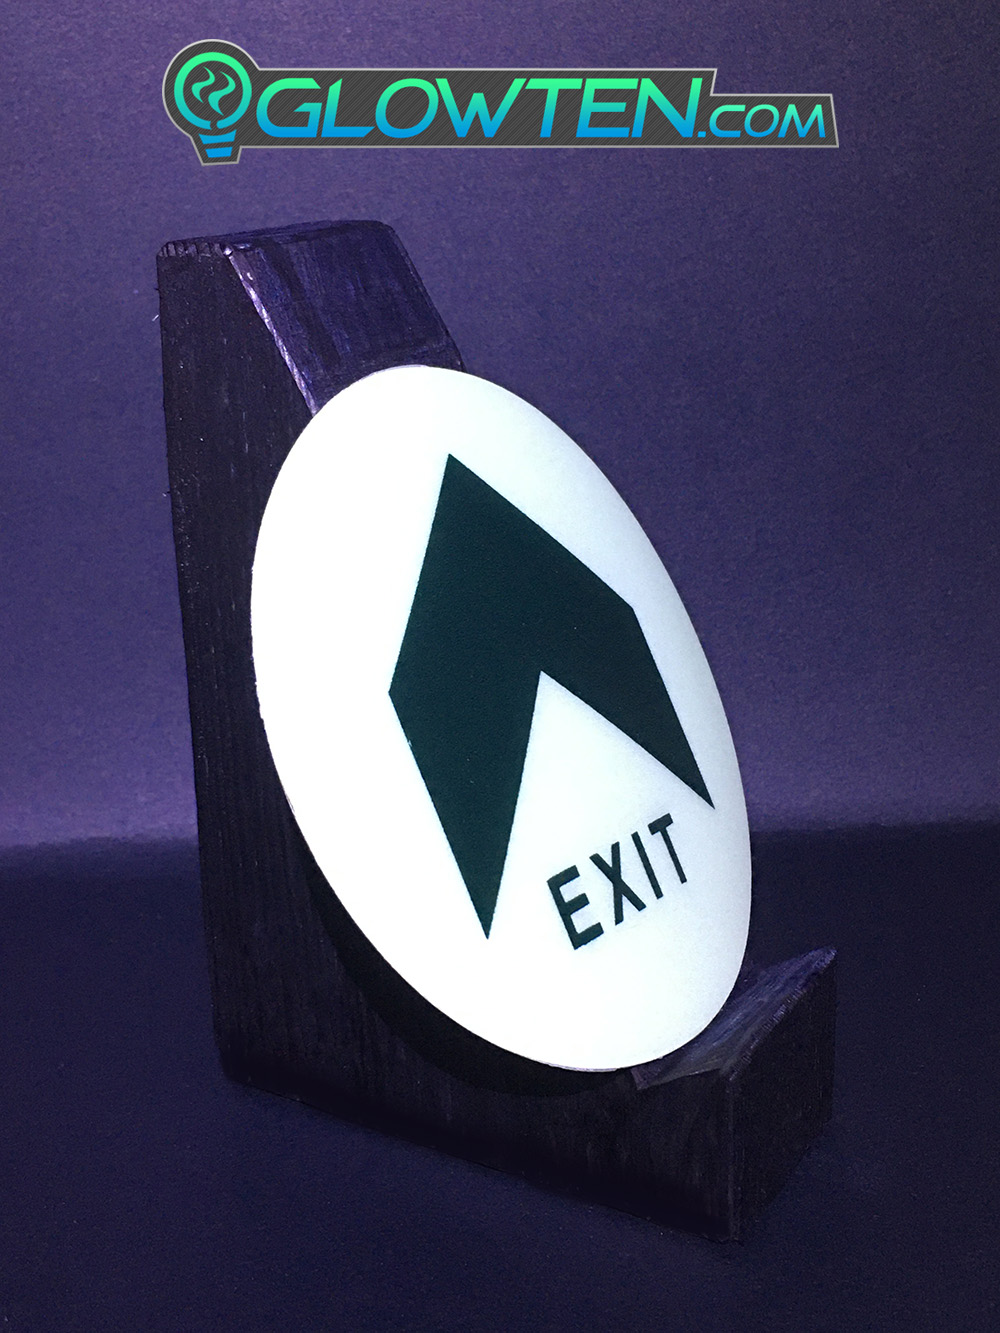 GLOWTEN.com - Subways, Airports, Shopping Malls, Office Buildings, Factories, Schools, Hospitals, Indoor Stadiumslarge Arrow Fire Exit Sign Emergency Glow In The Dark Eco Friendly Photoluminescent Pigment Pvc Plastic With Adhesive picture photo cap preview pic image search 5